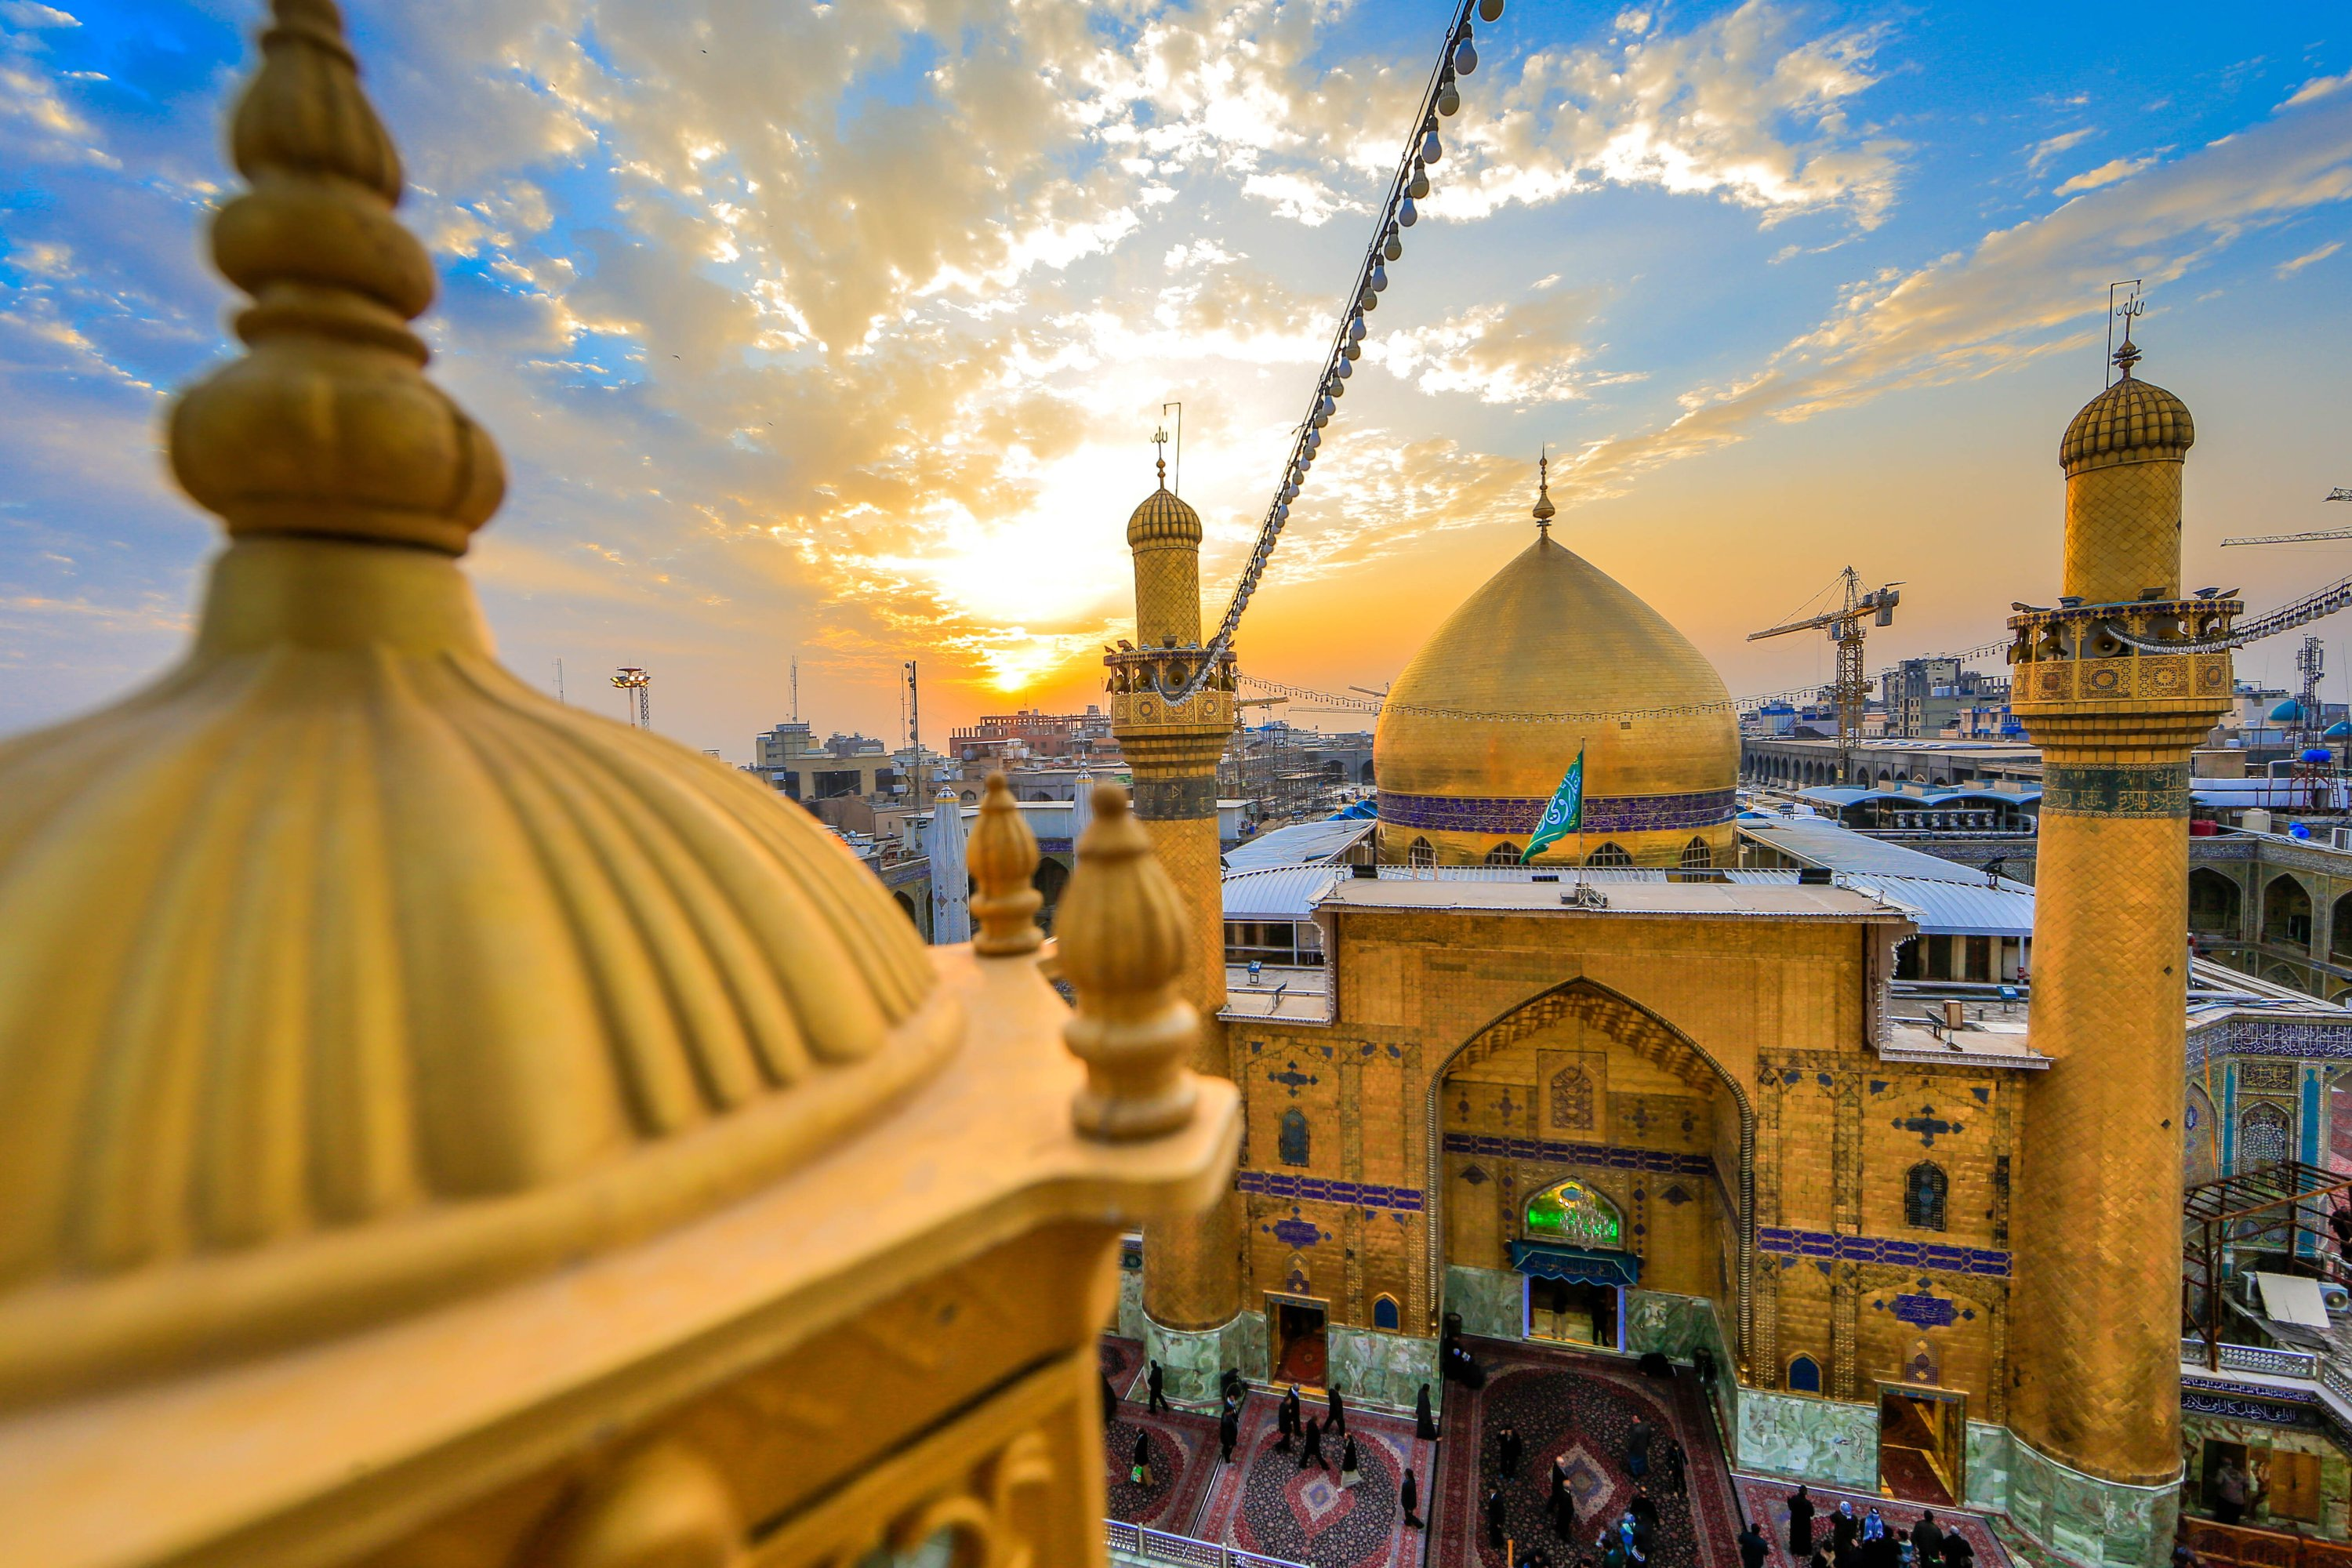 The Shrine of Imam Ali houses the burial site of Ali, who is he son-in-law of the Prophet Muhammad and the fourth caliph.